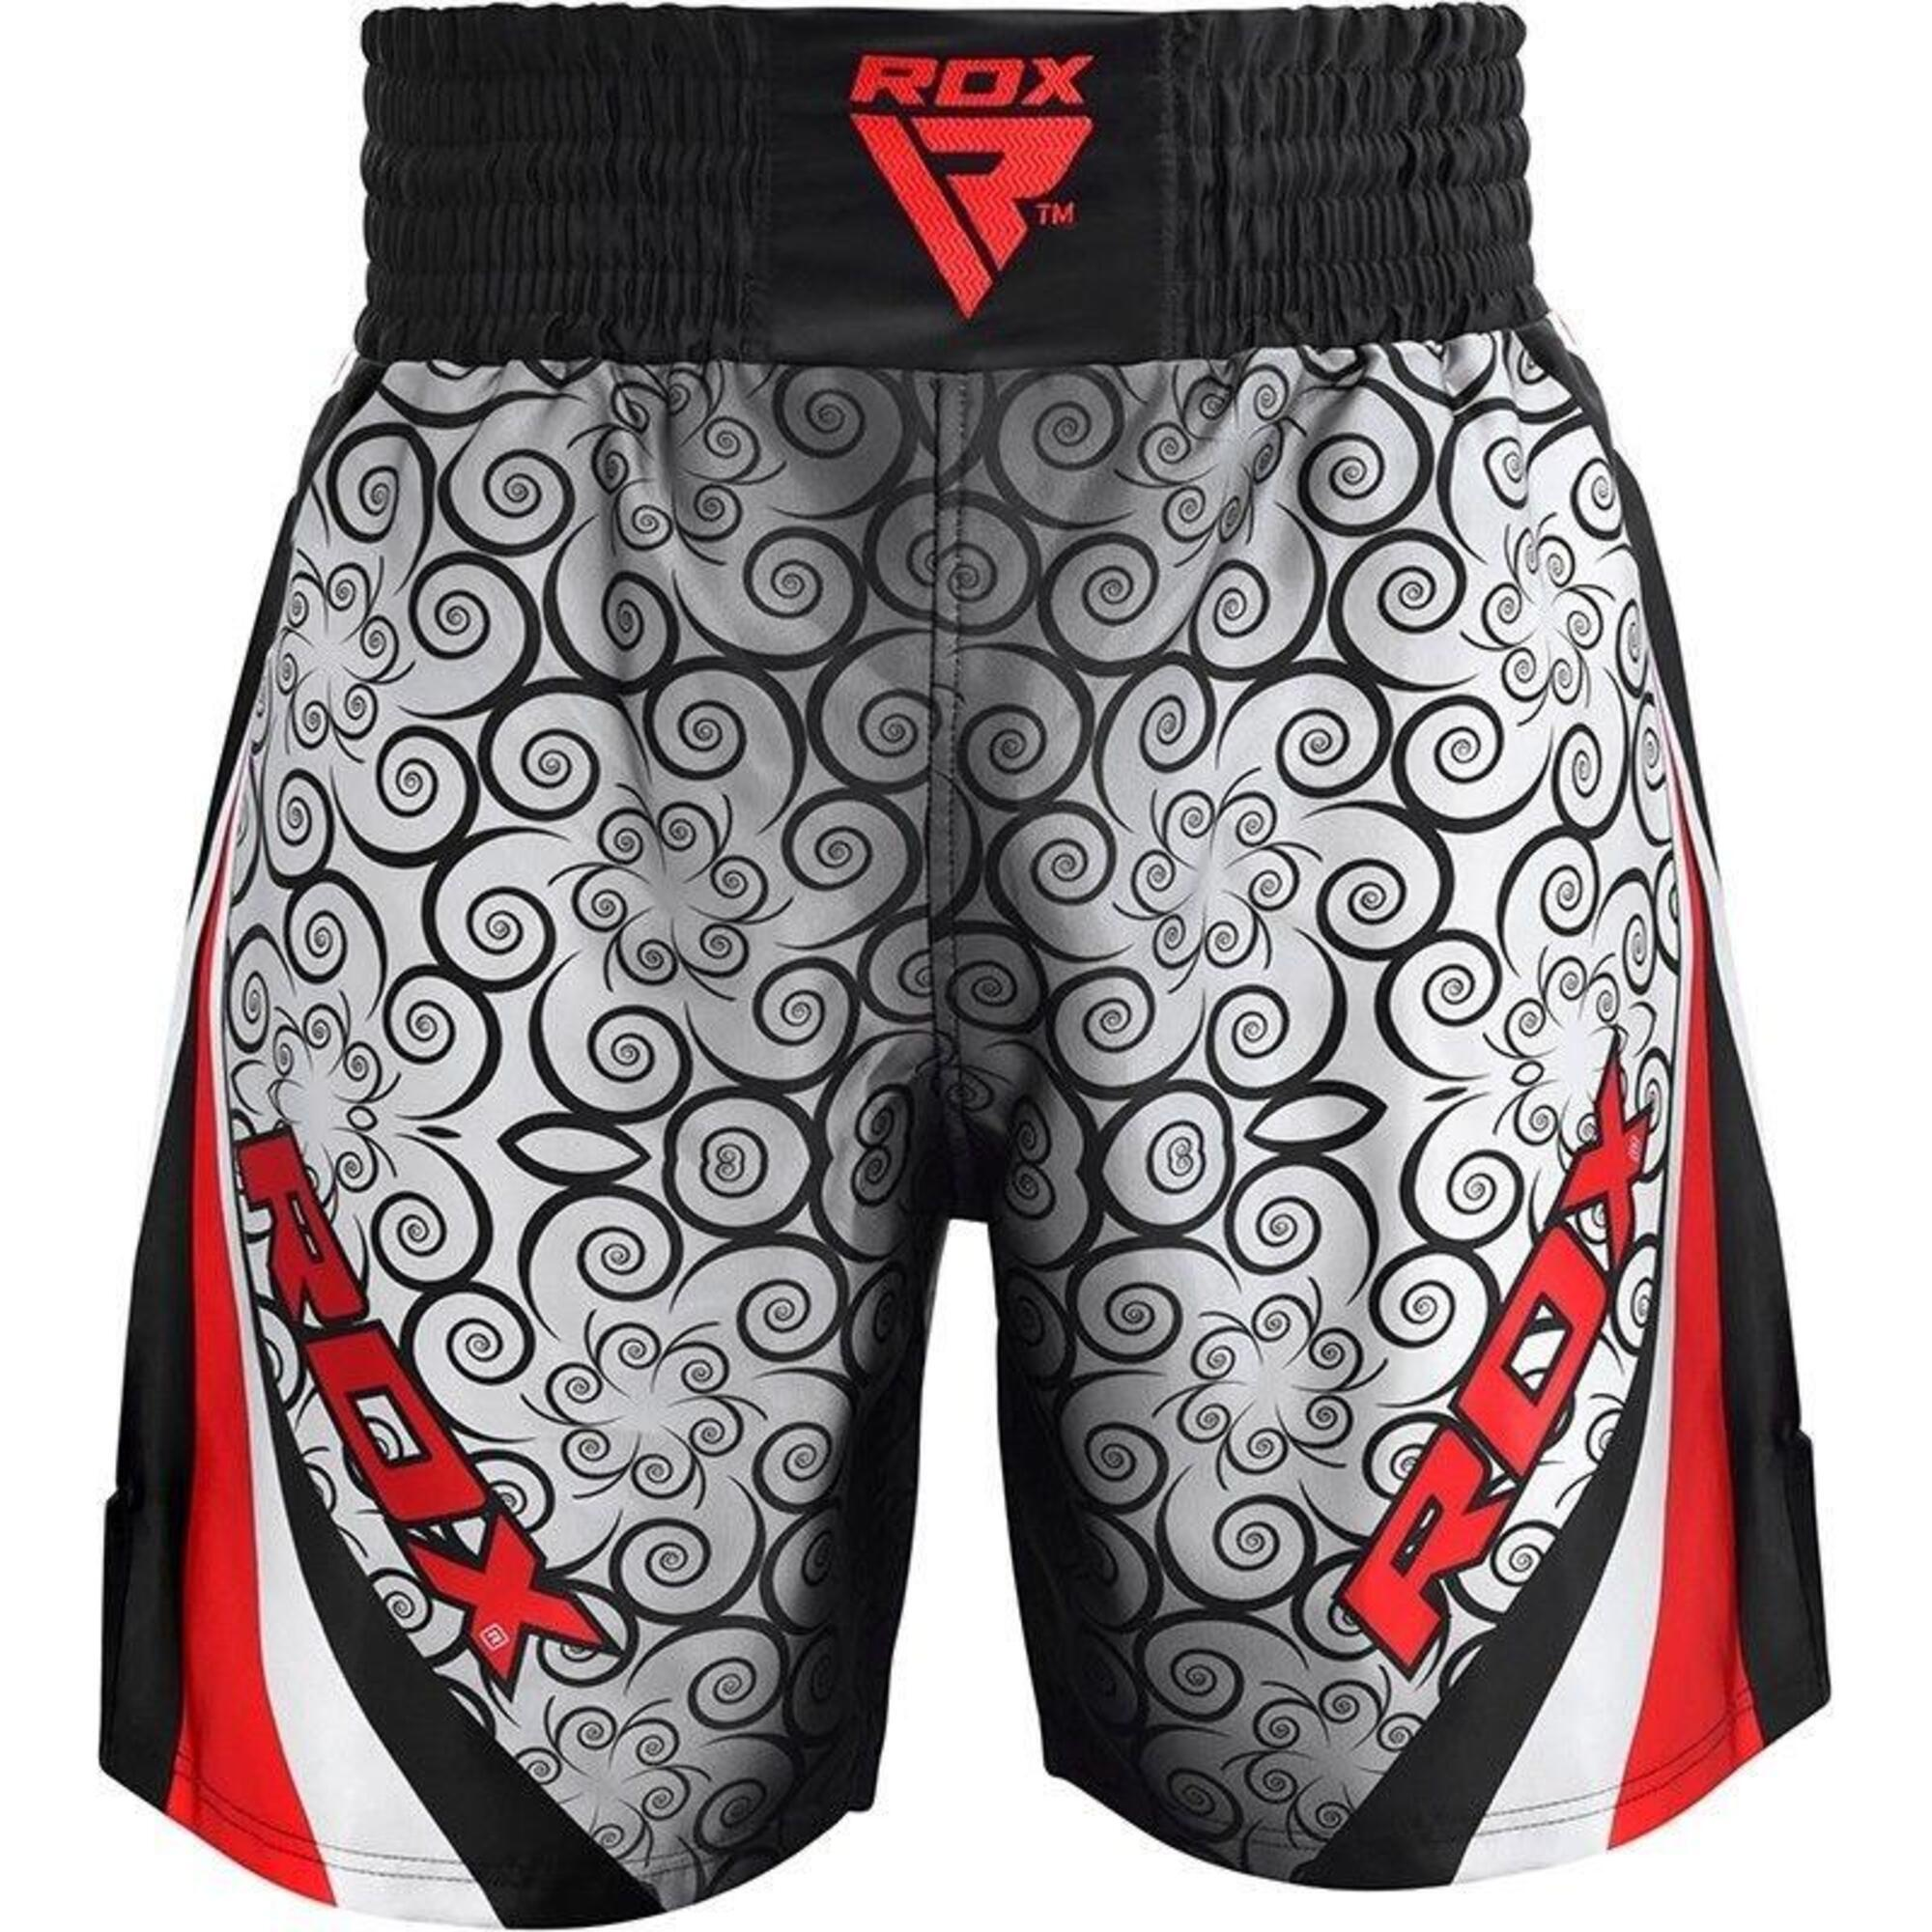 BSS Boxing Training Shorts Satin R1 - Rouge - M